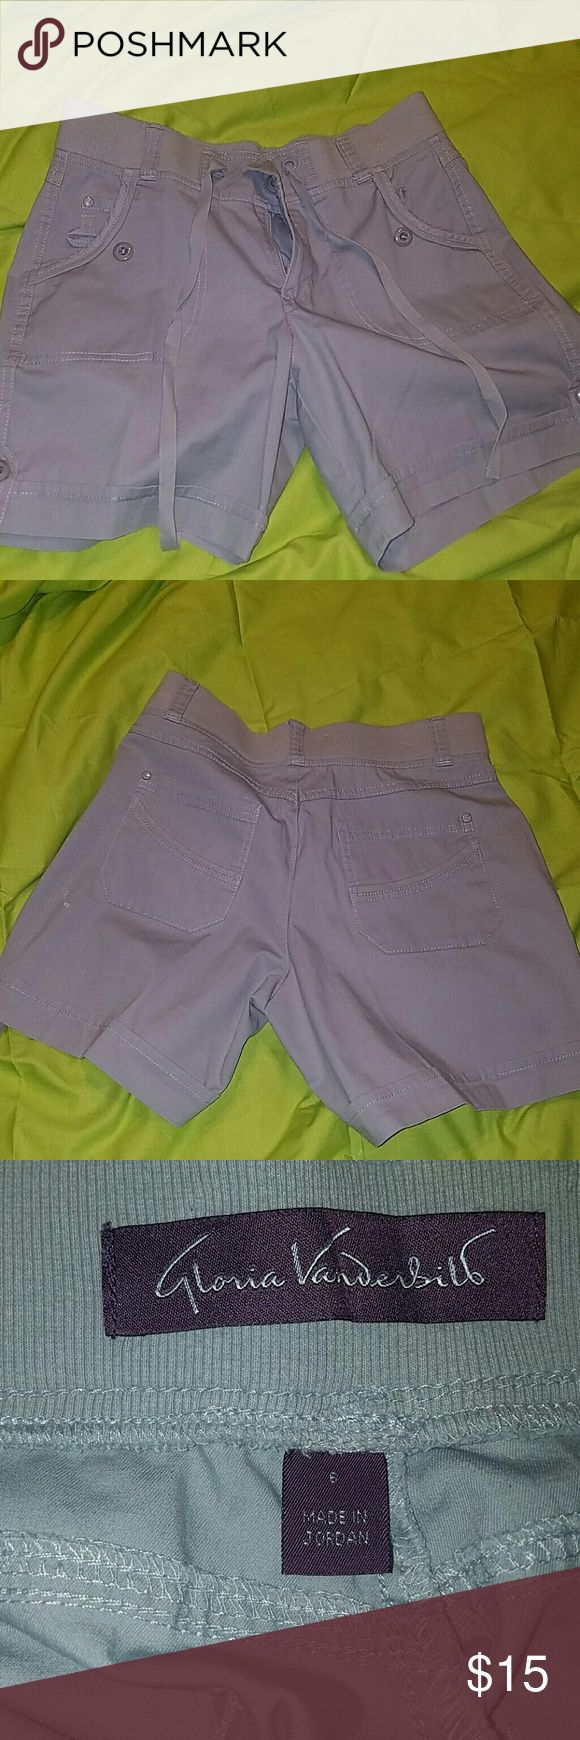 Gloria Vanderbilt cargo short. These Gloria Vanderbilt cargo short are a size 6. Great condition. Gloria Vanderbilt Shorts Cargos